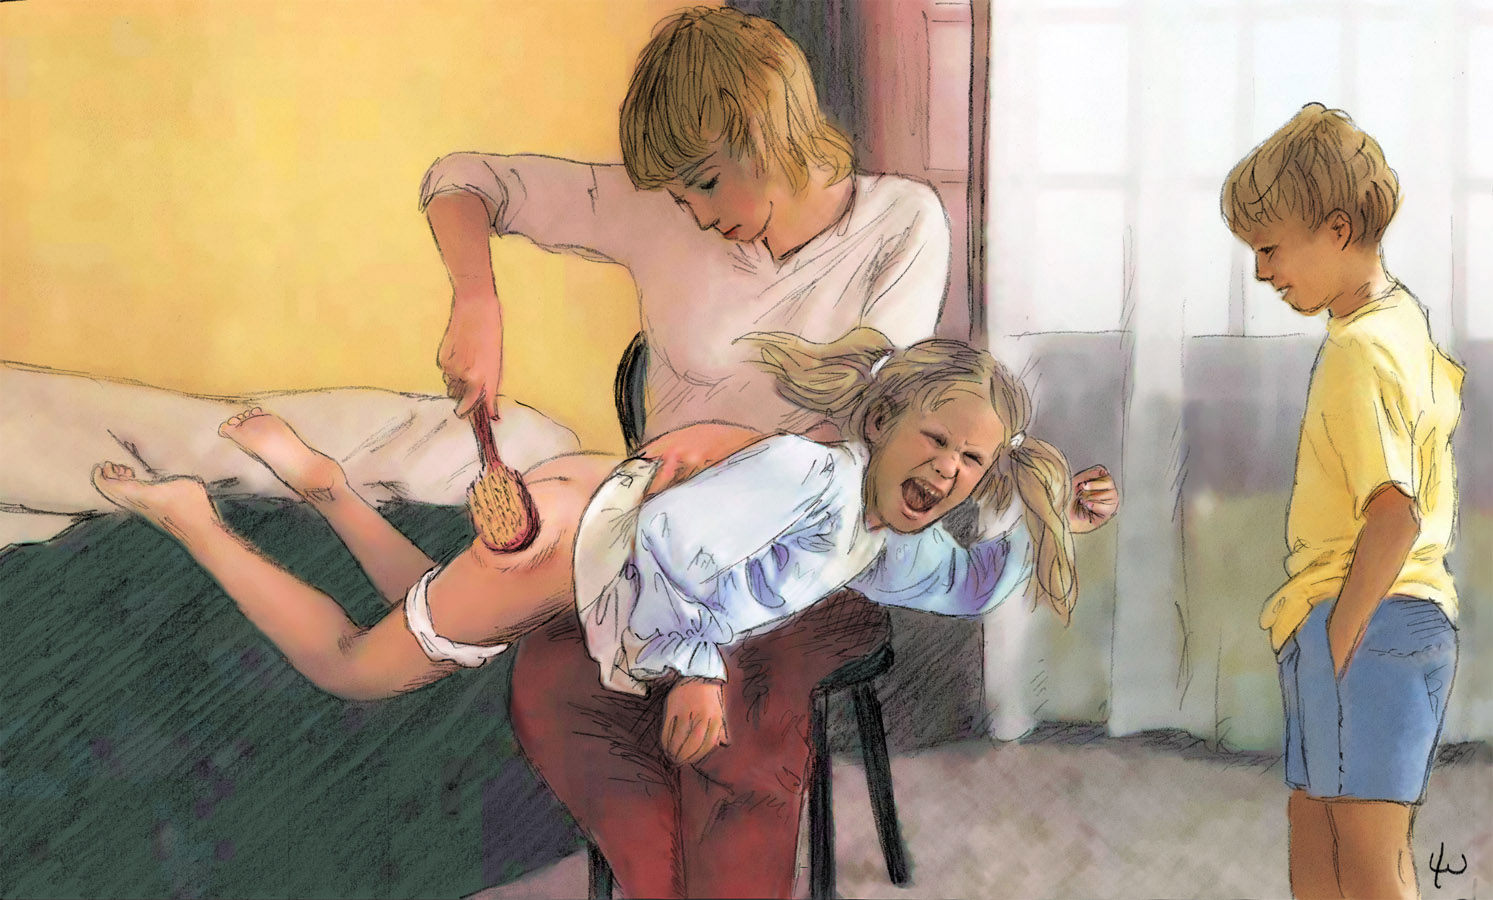 Lee Warner Spanking Art: http://xxgasm.com/lee-warner-spanking-art/